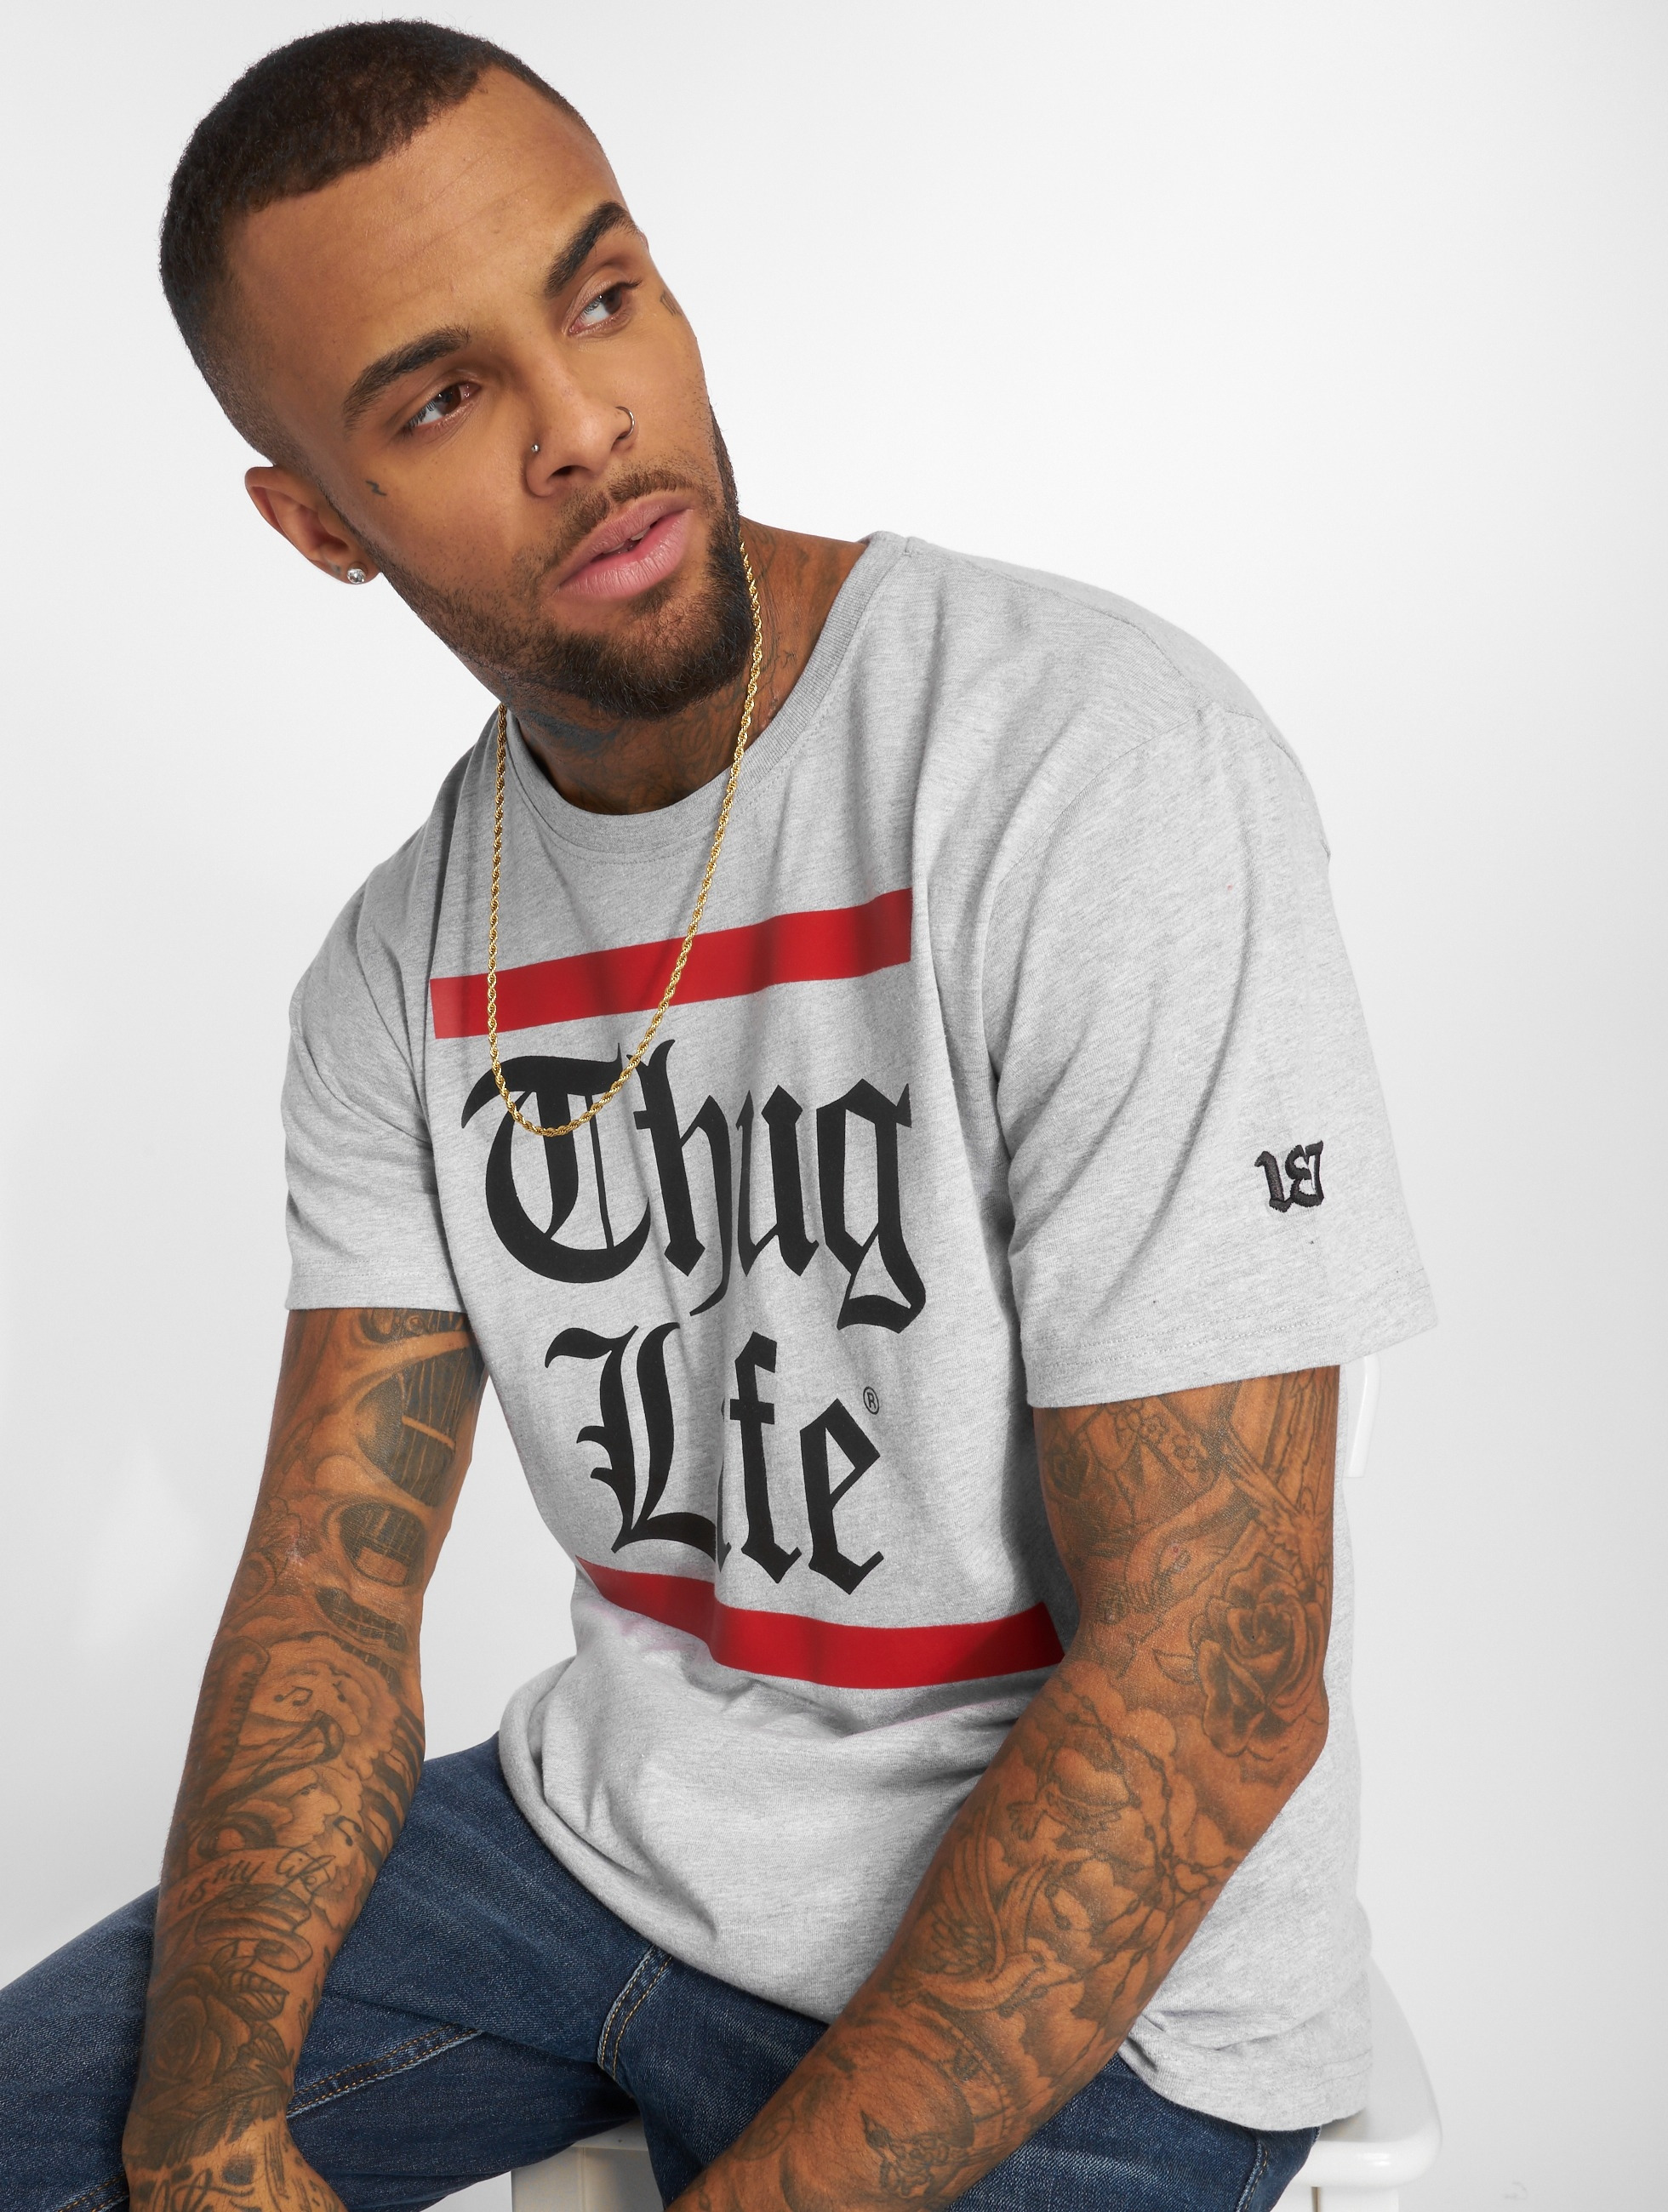 Thug Life / T-Shirt B.Gothic in grey S